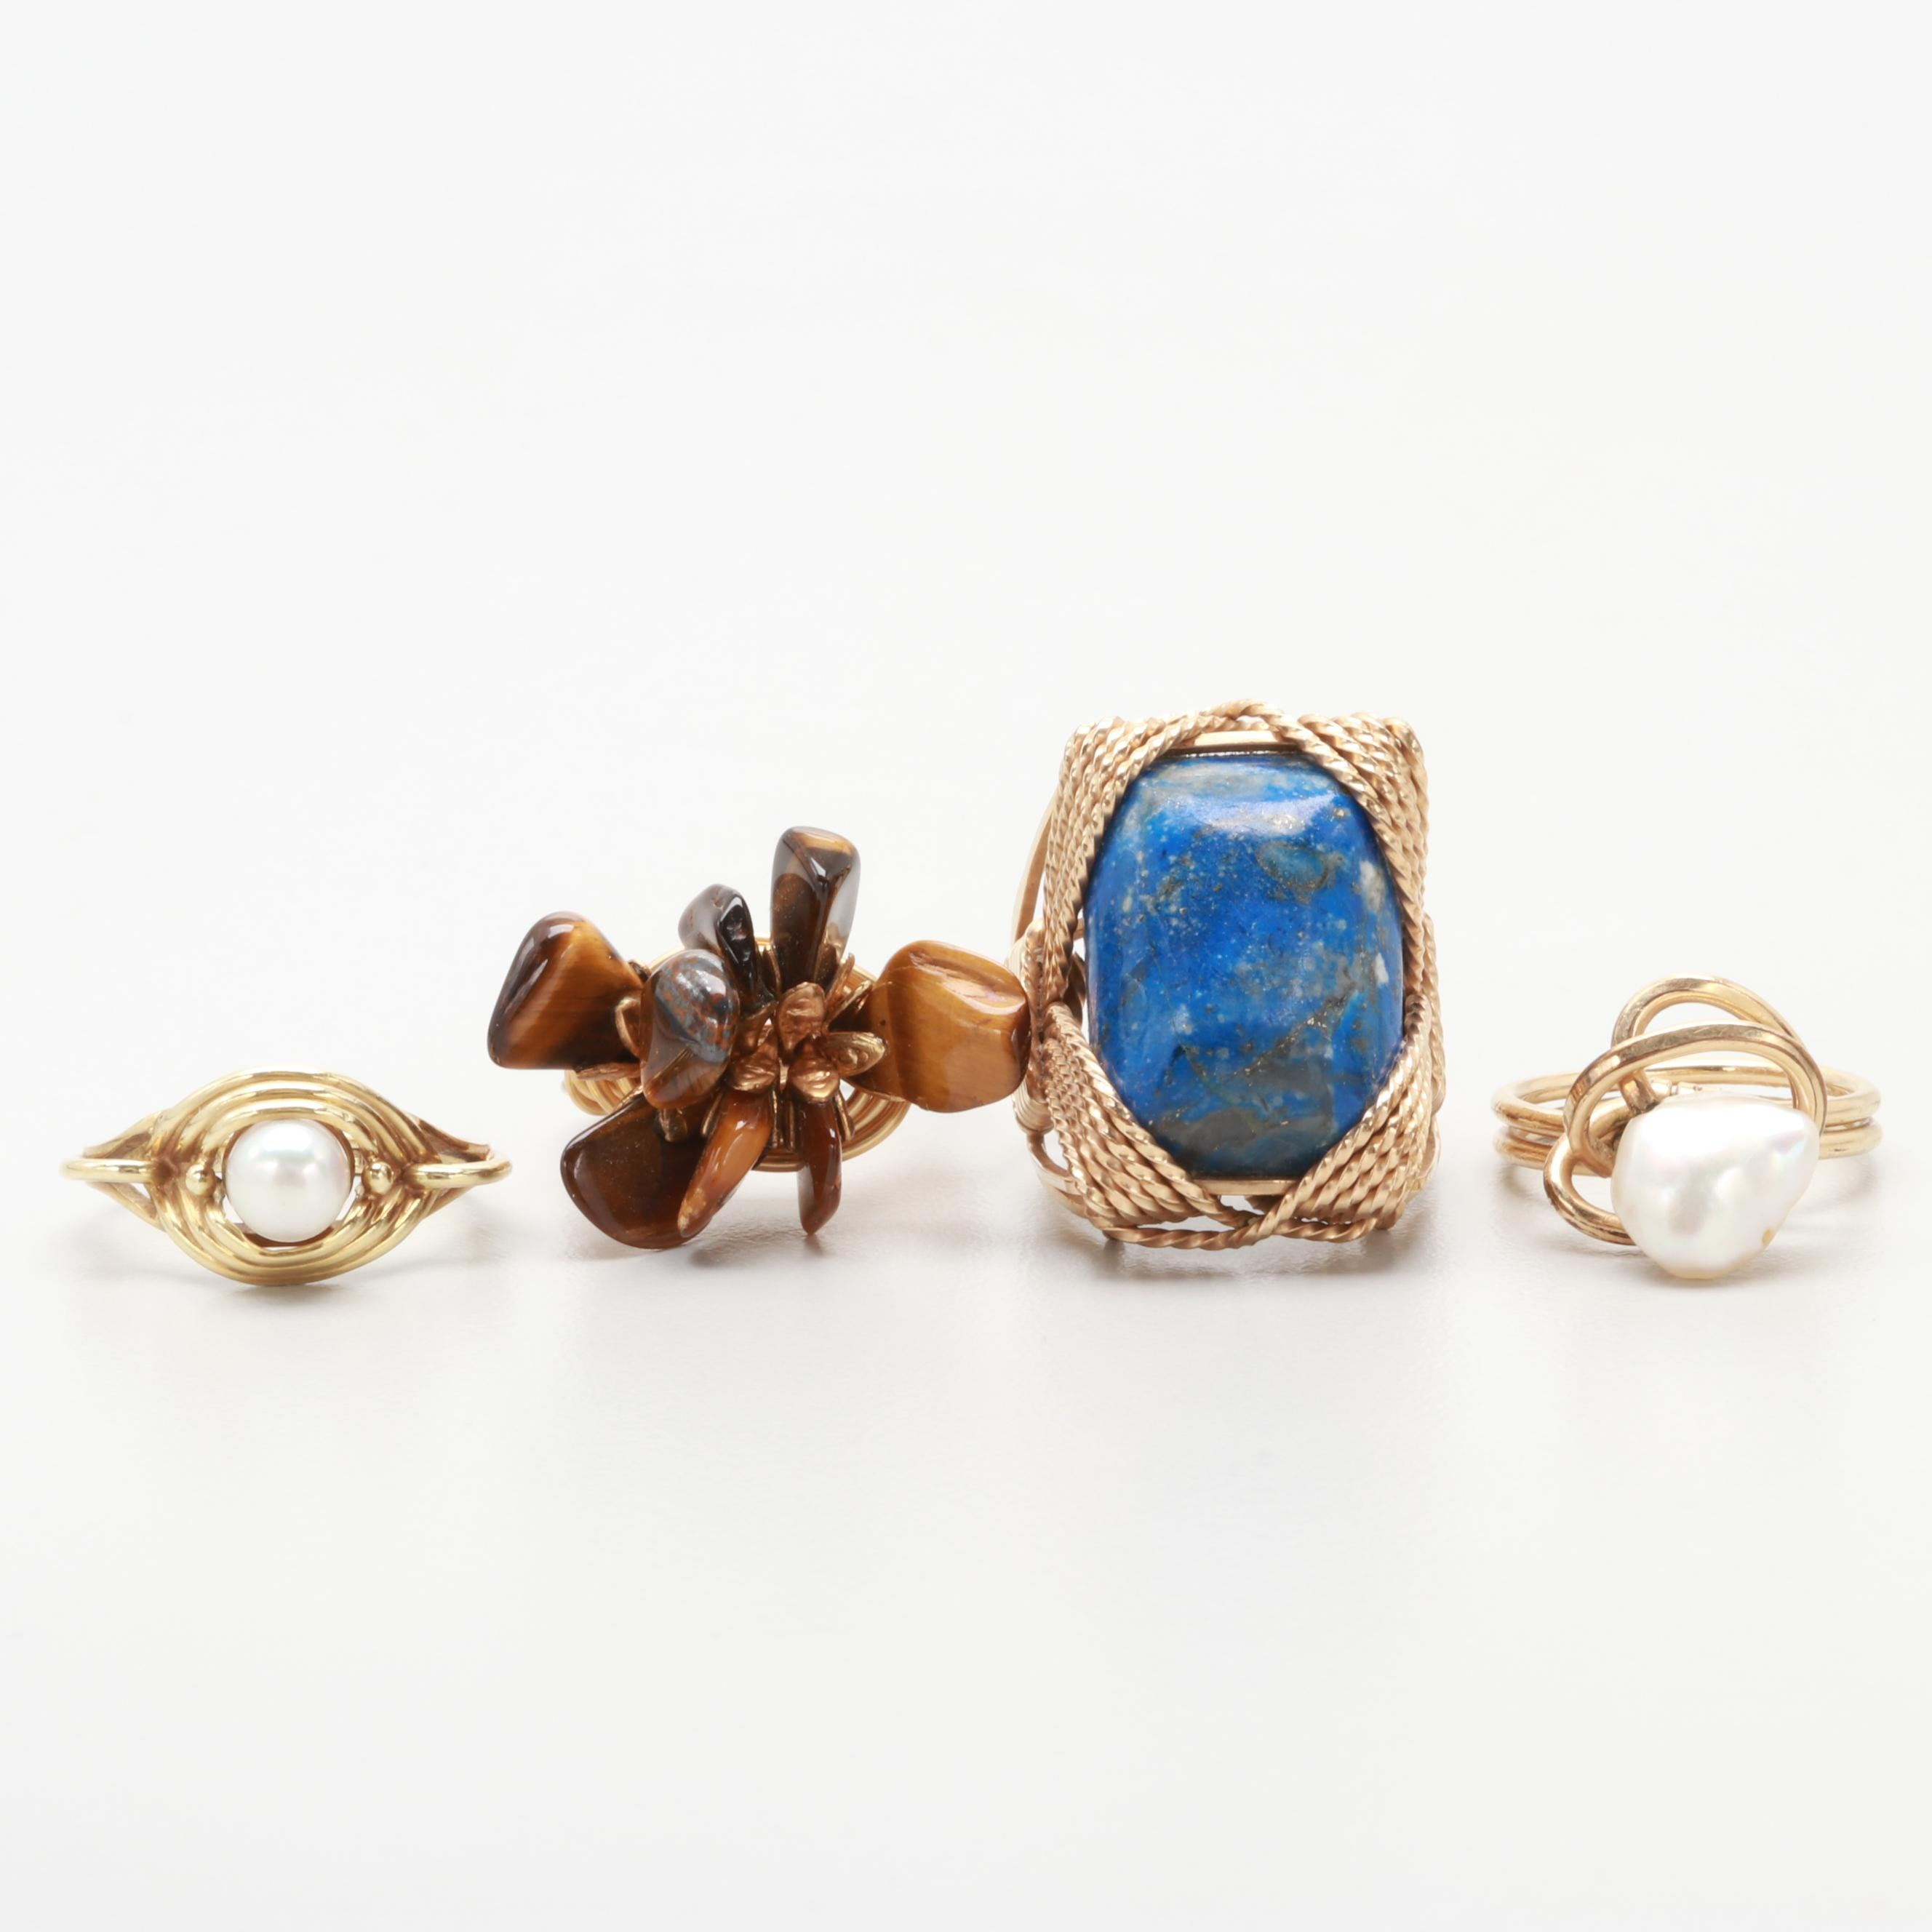 Vintage 14K Gold Wire Wrap Ring Collection Including Lapiz, Tiger's Eye, Pearl